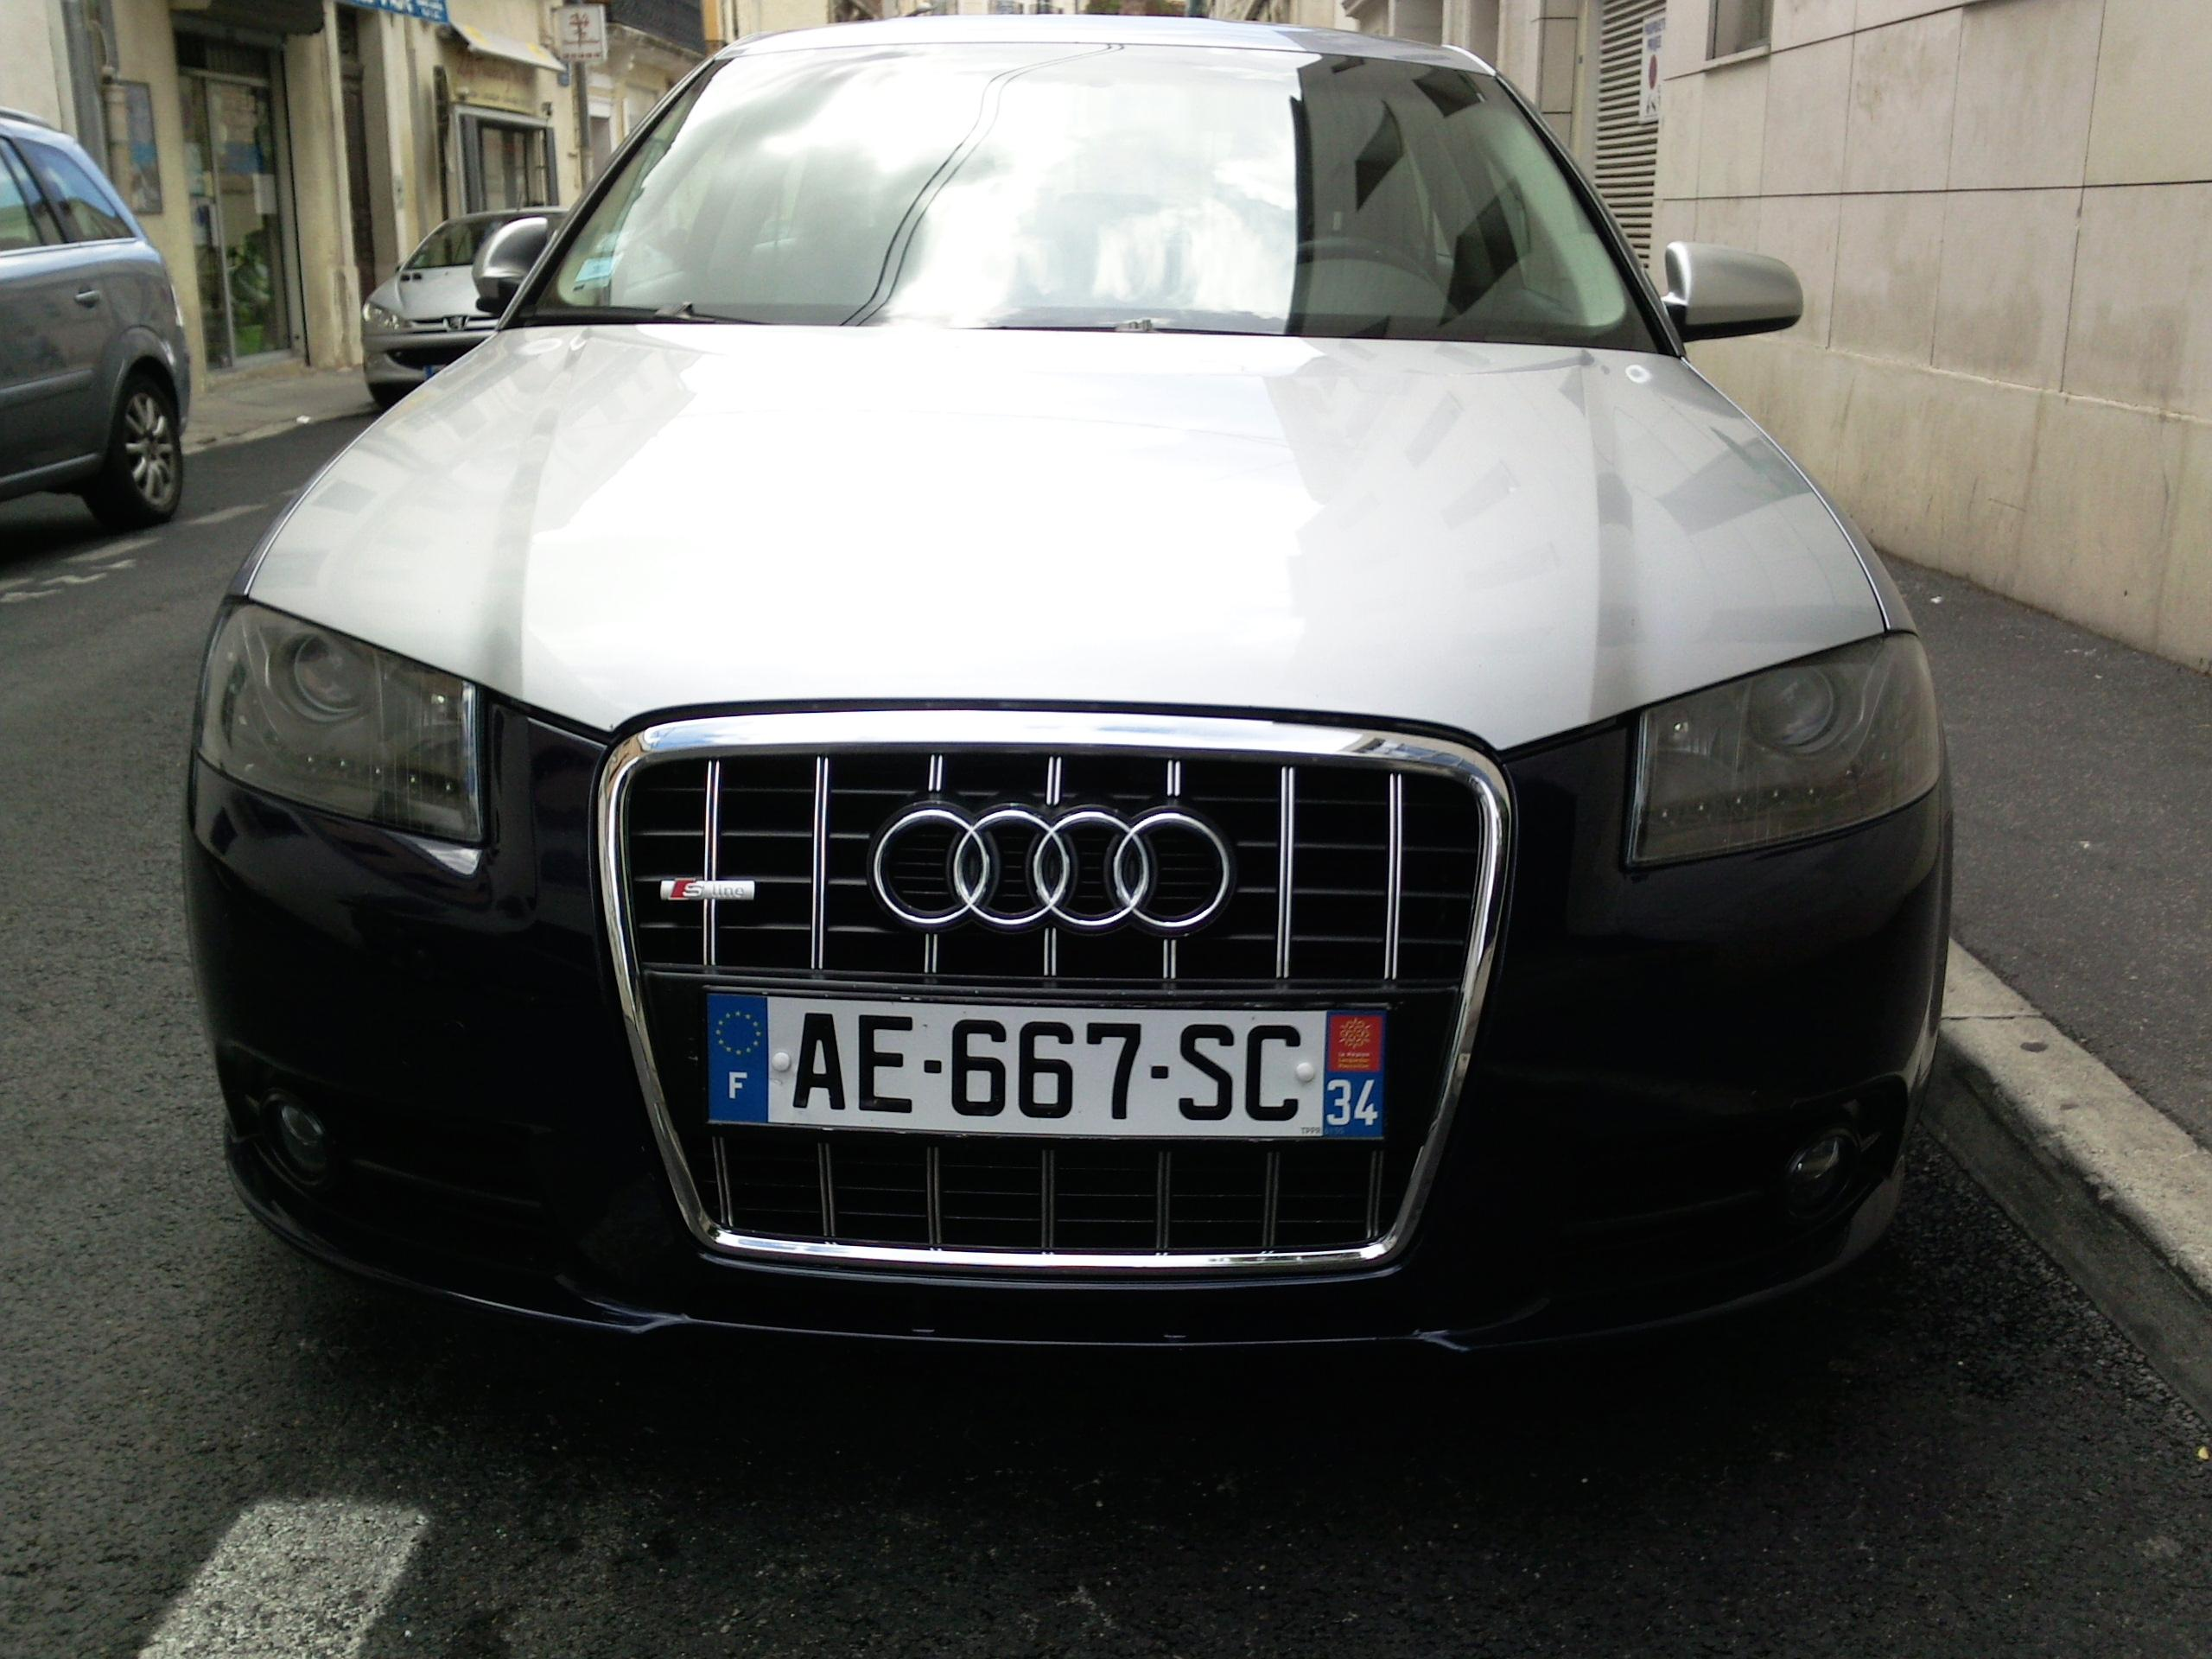 nicolas mon a3 akoya garages des a3 2 0 tdi 136 140 143 page 11 forum audi a3 8p 8v. Black Bedroom Furniture Sets. Home Design Ideas